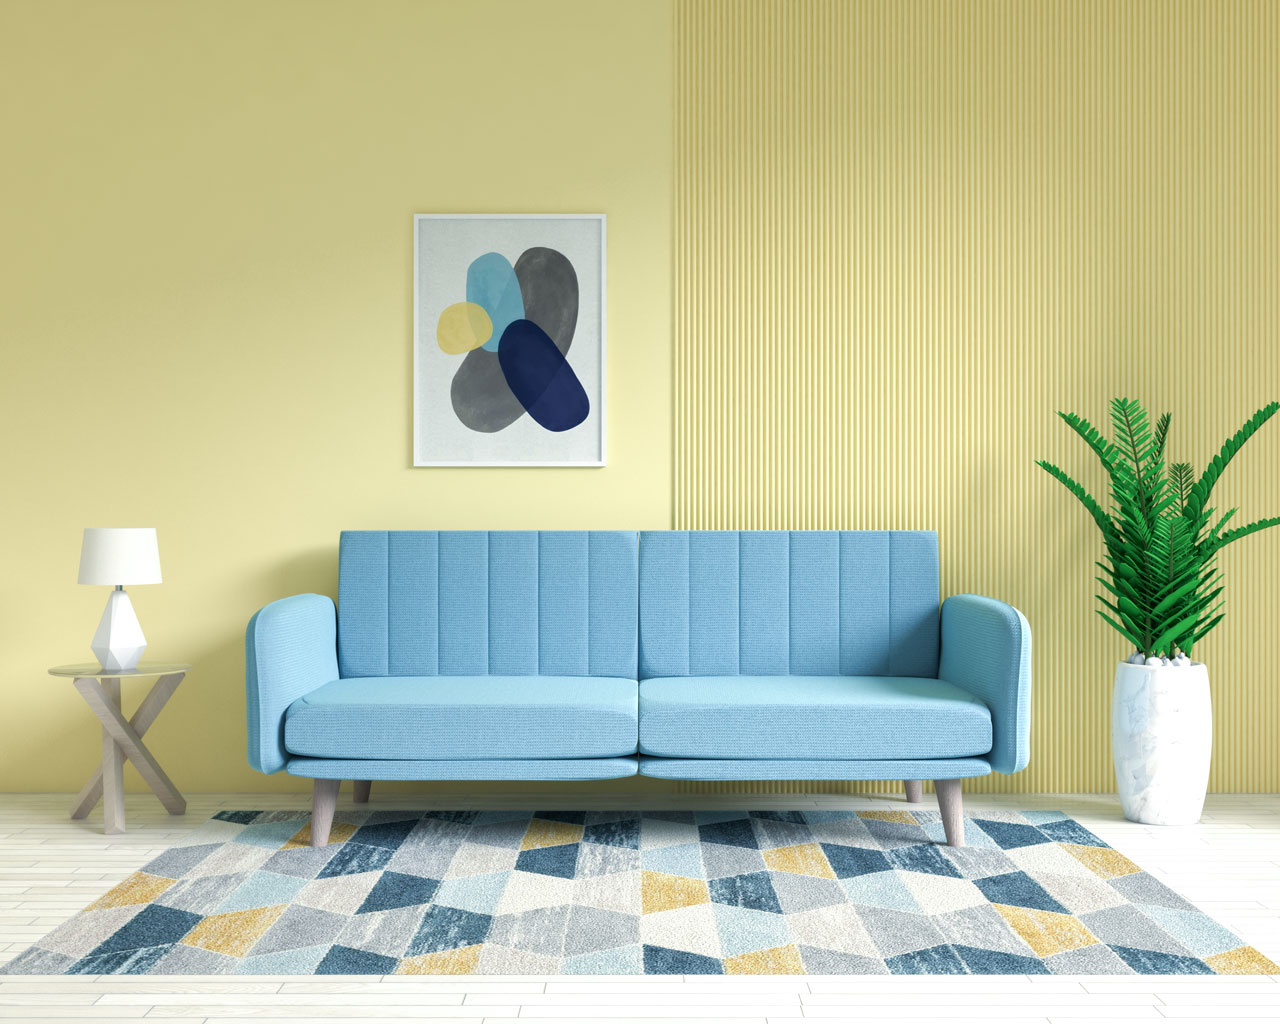 Light blue sofa in yellow living room